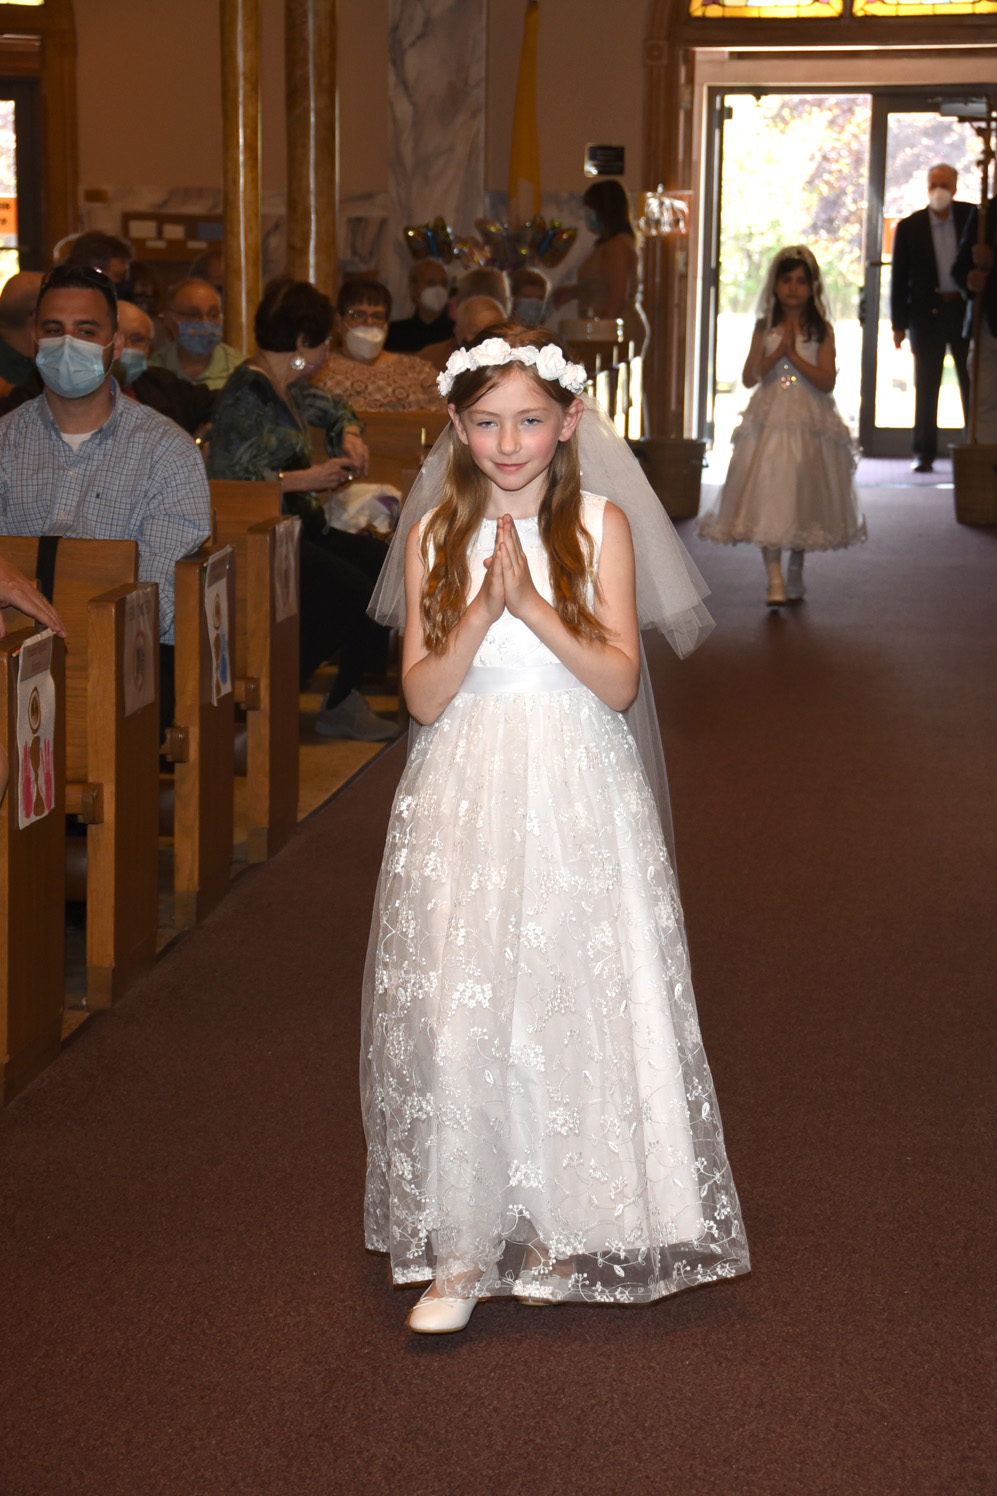 FIRST-COMMUNION-MAY-16-2021-47